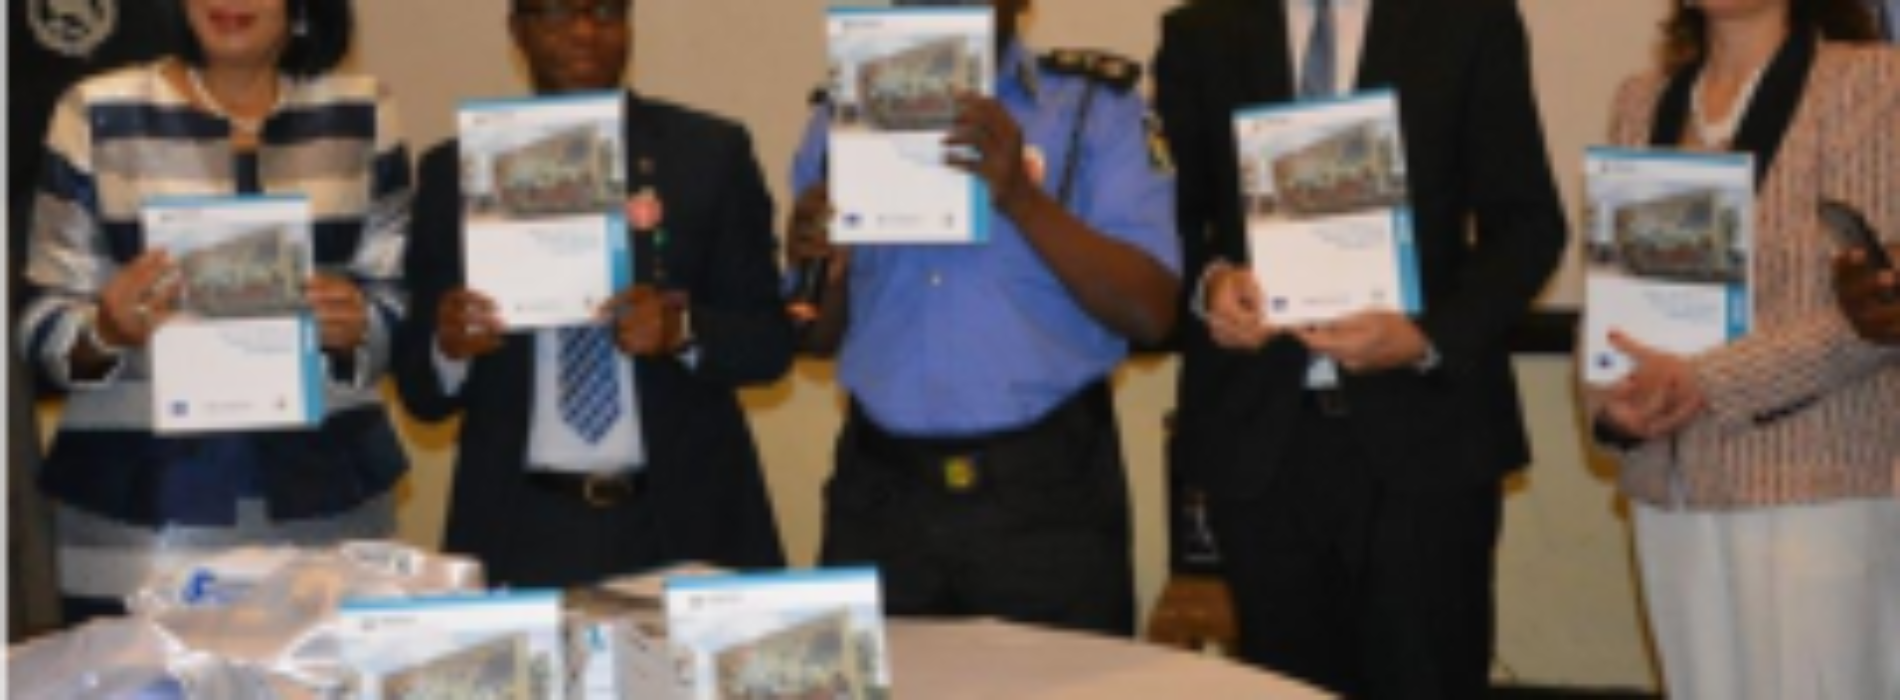 UNODC launches new Nigeria Handbook on counter-terrorism investigations